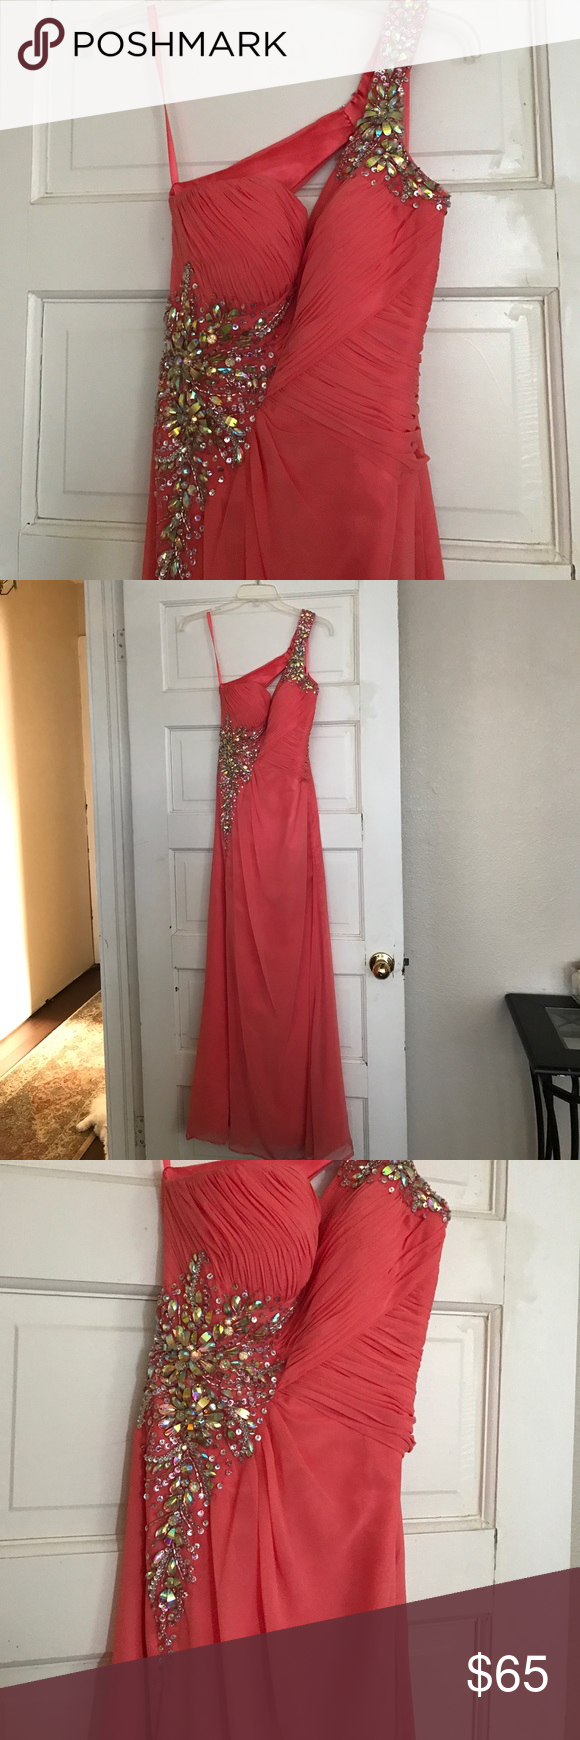 Beautiful formal prom dress like brand new condition coya